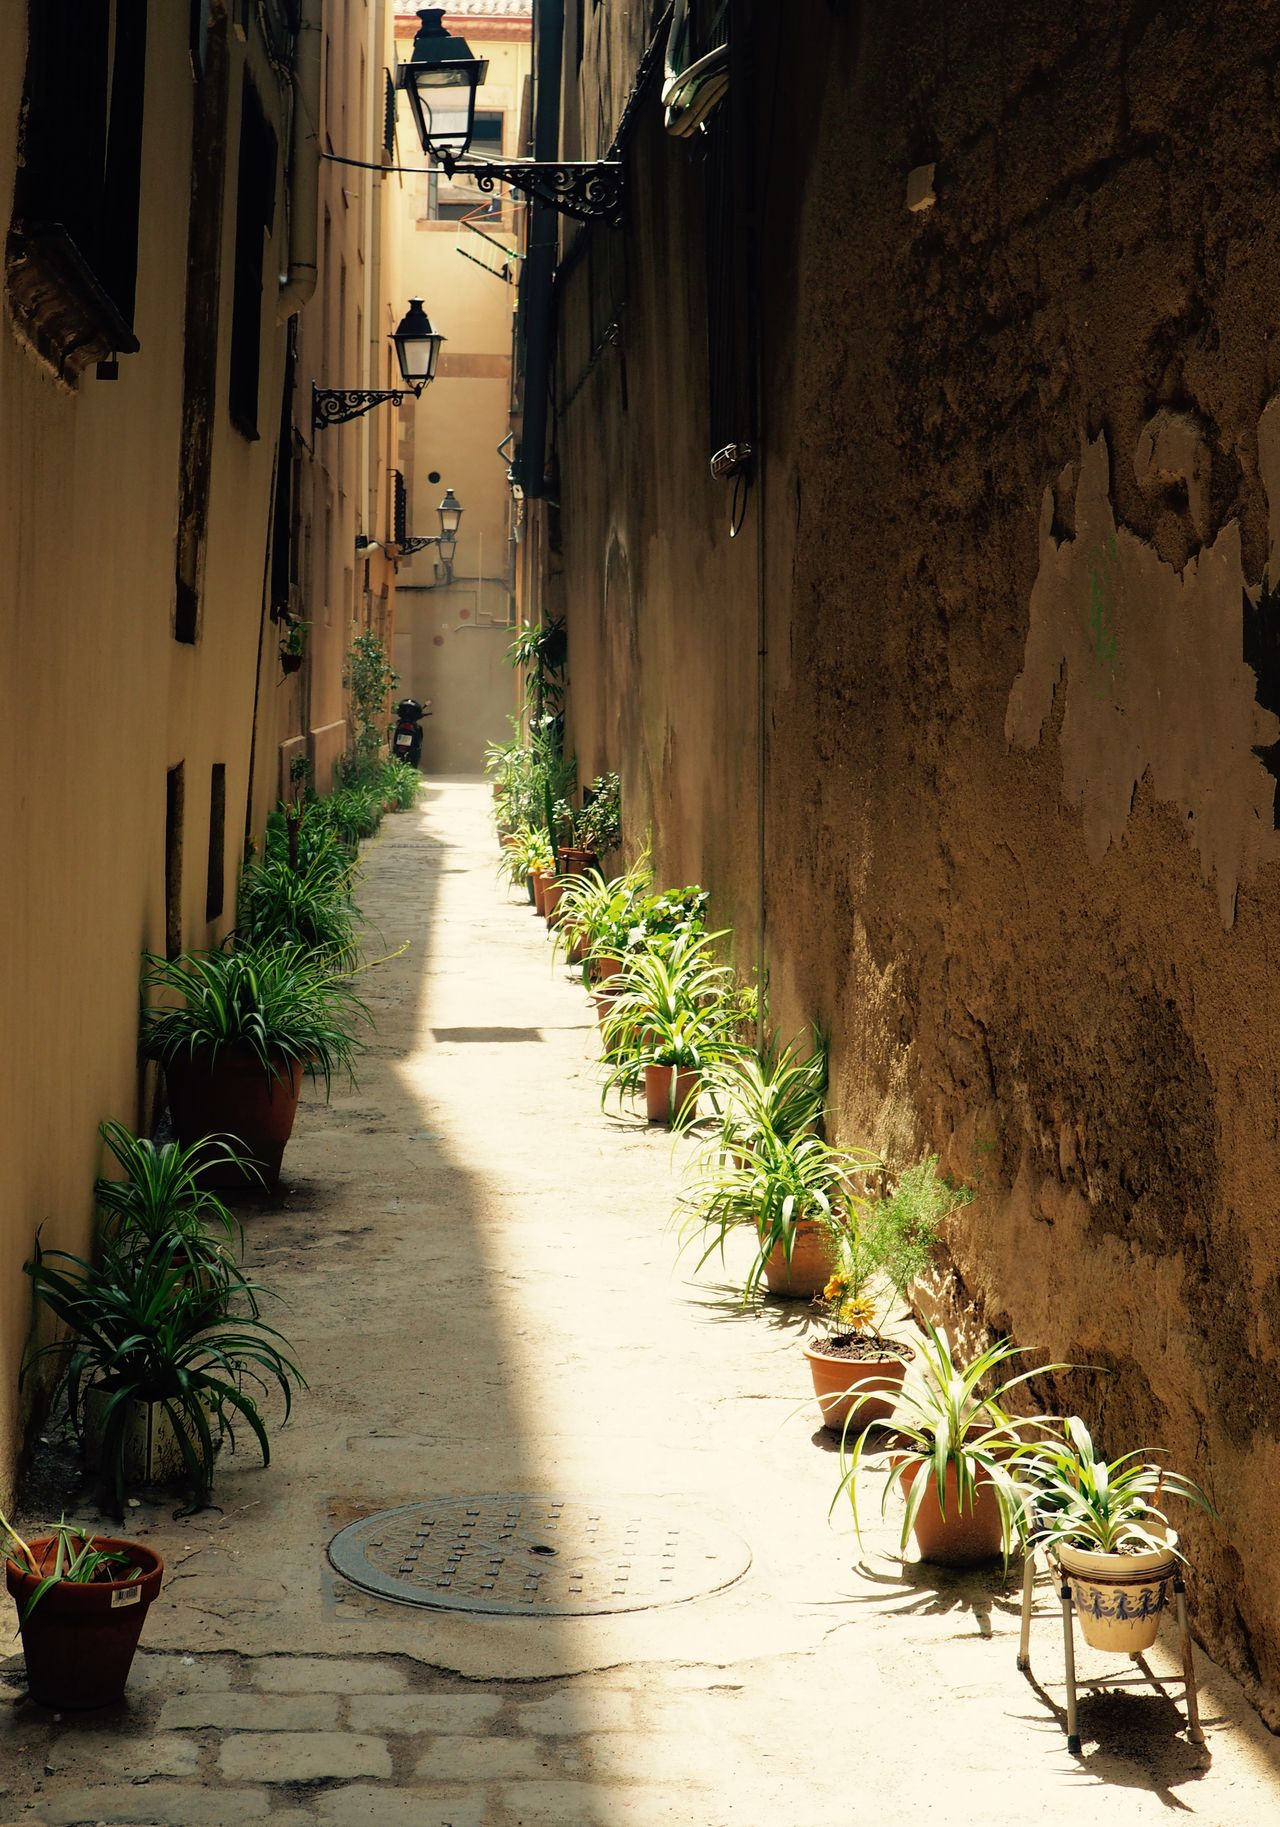 Alley Architecture Building Exterior Built Structure Day Growth Nature No People Outdoors Plant Potted Plant Residential Building The Way Forward Walkway